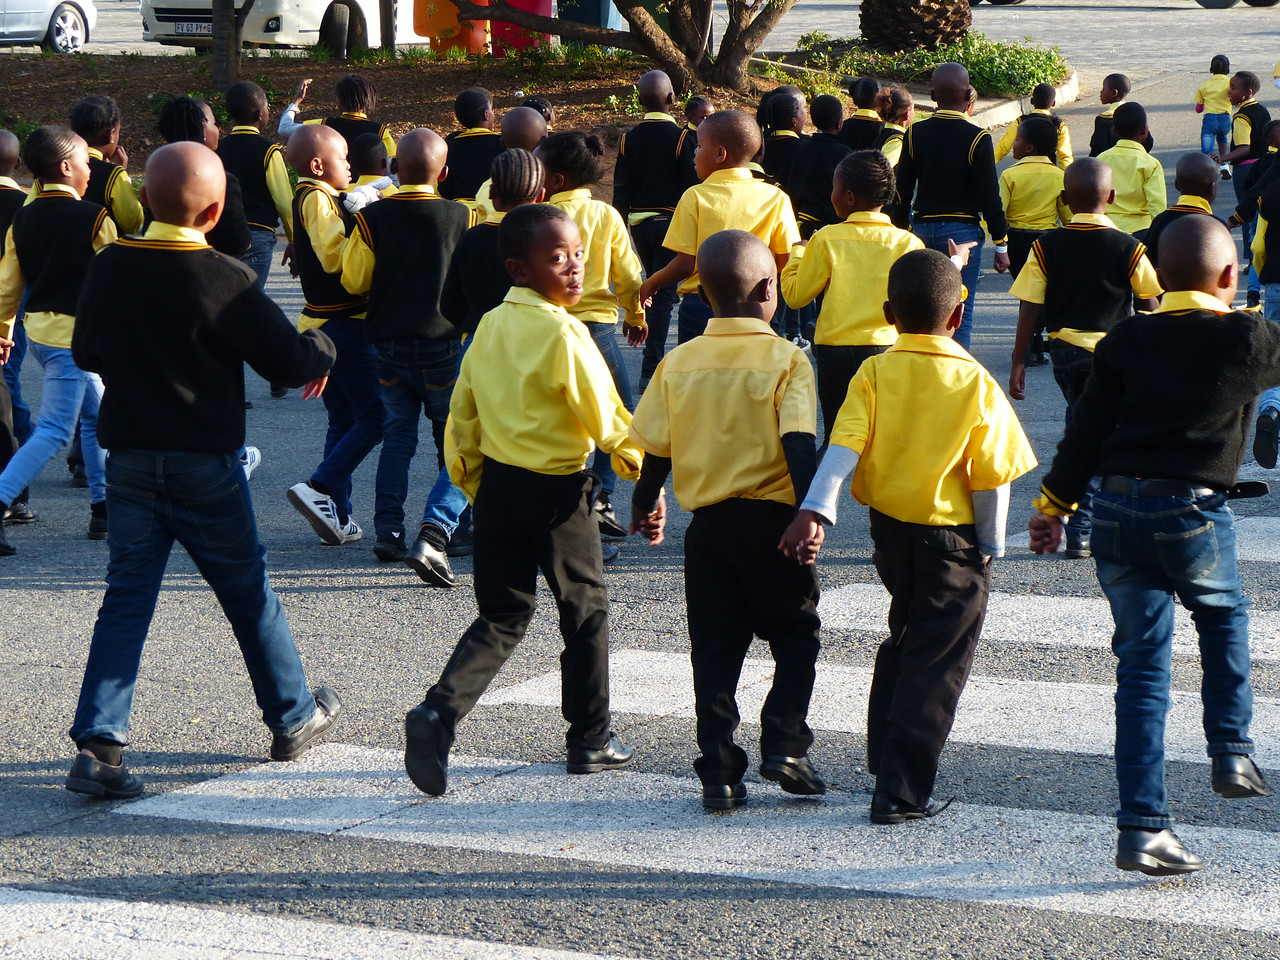 We saw these school kids when we visited the Apartheid Museum.